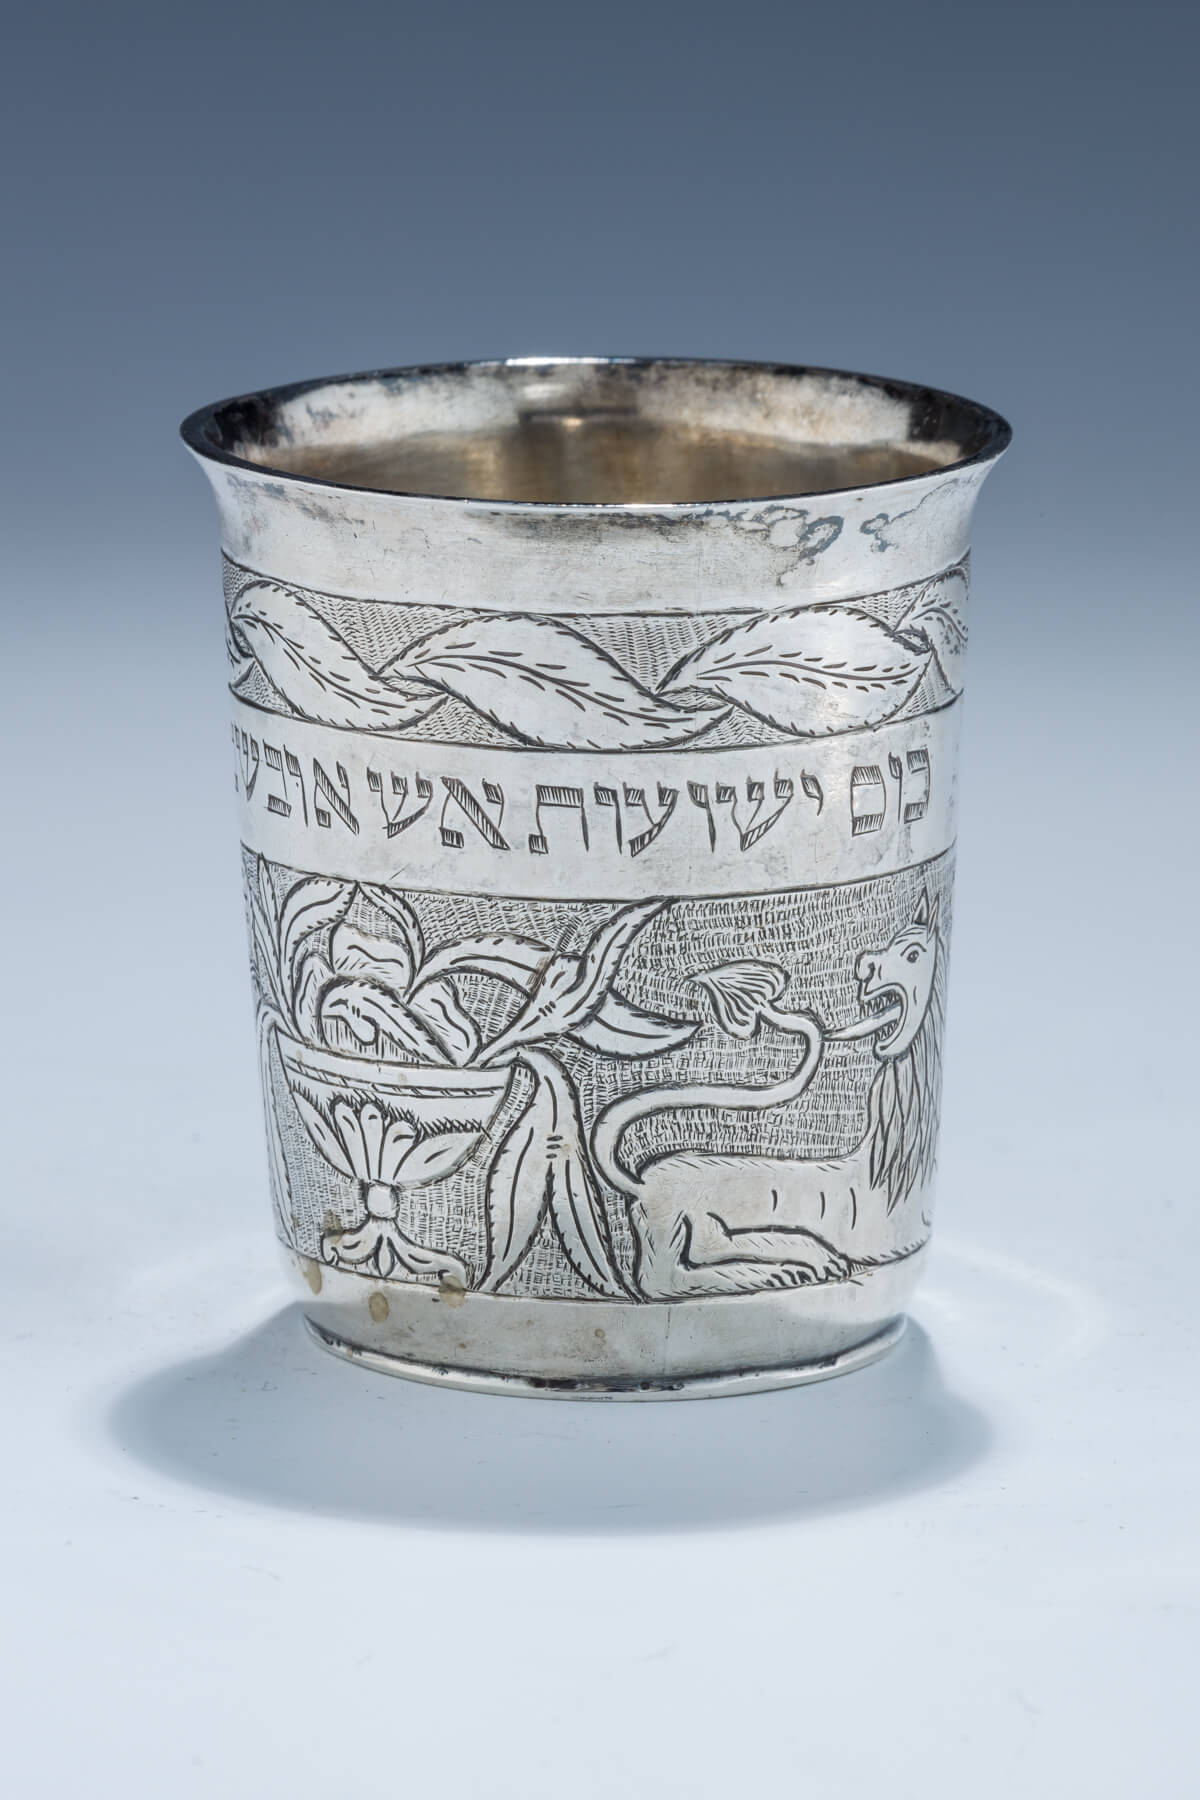 105. An Early Silver Kiddush Cup